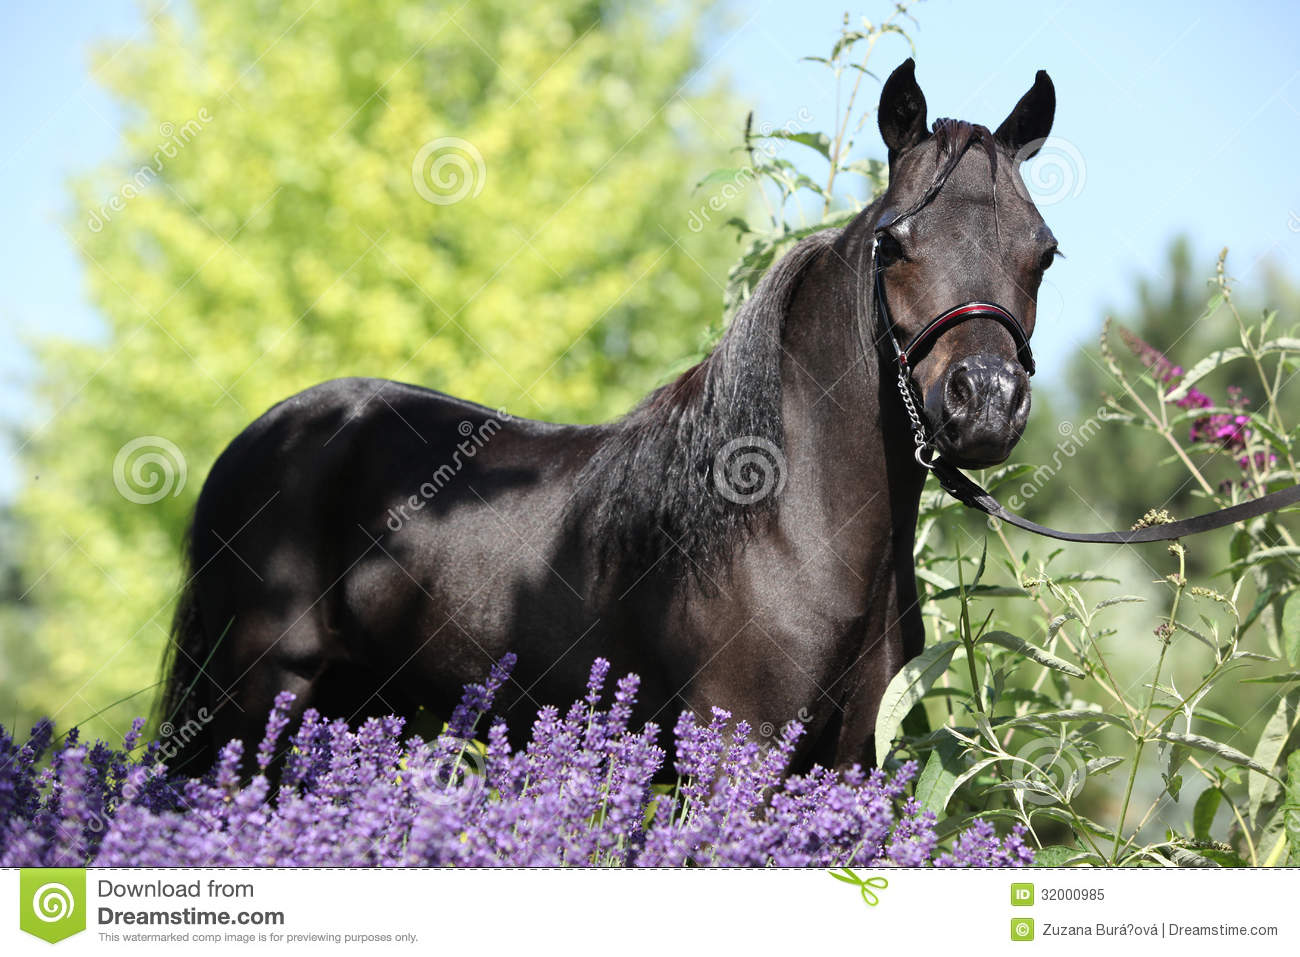 Black Miniature Horse Behind Purple Flowers Stock Image - Image of ...